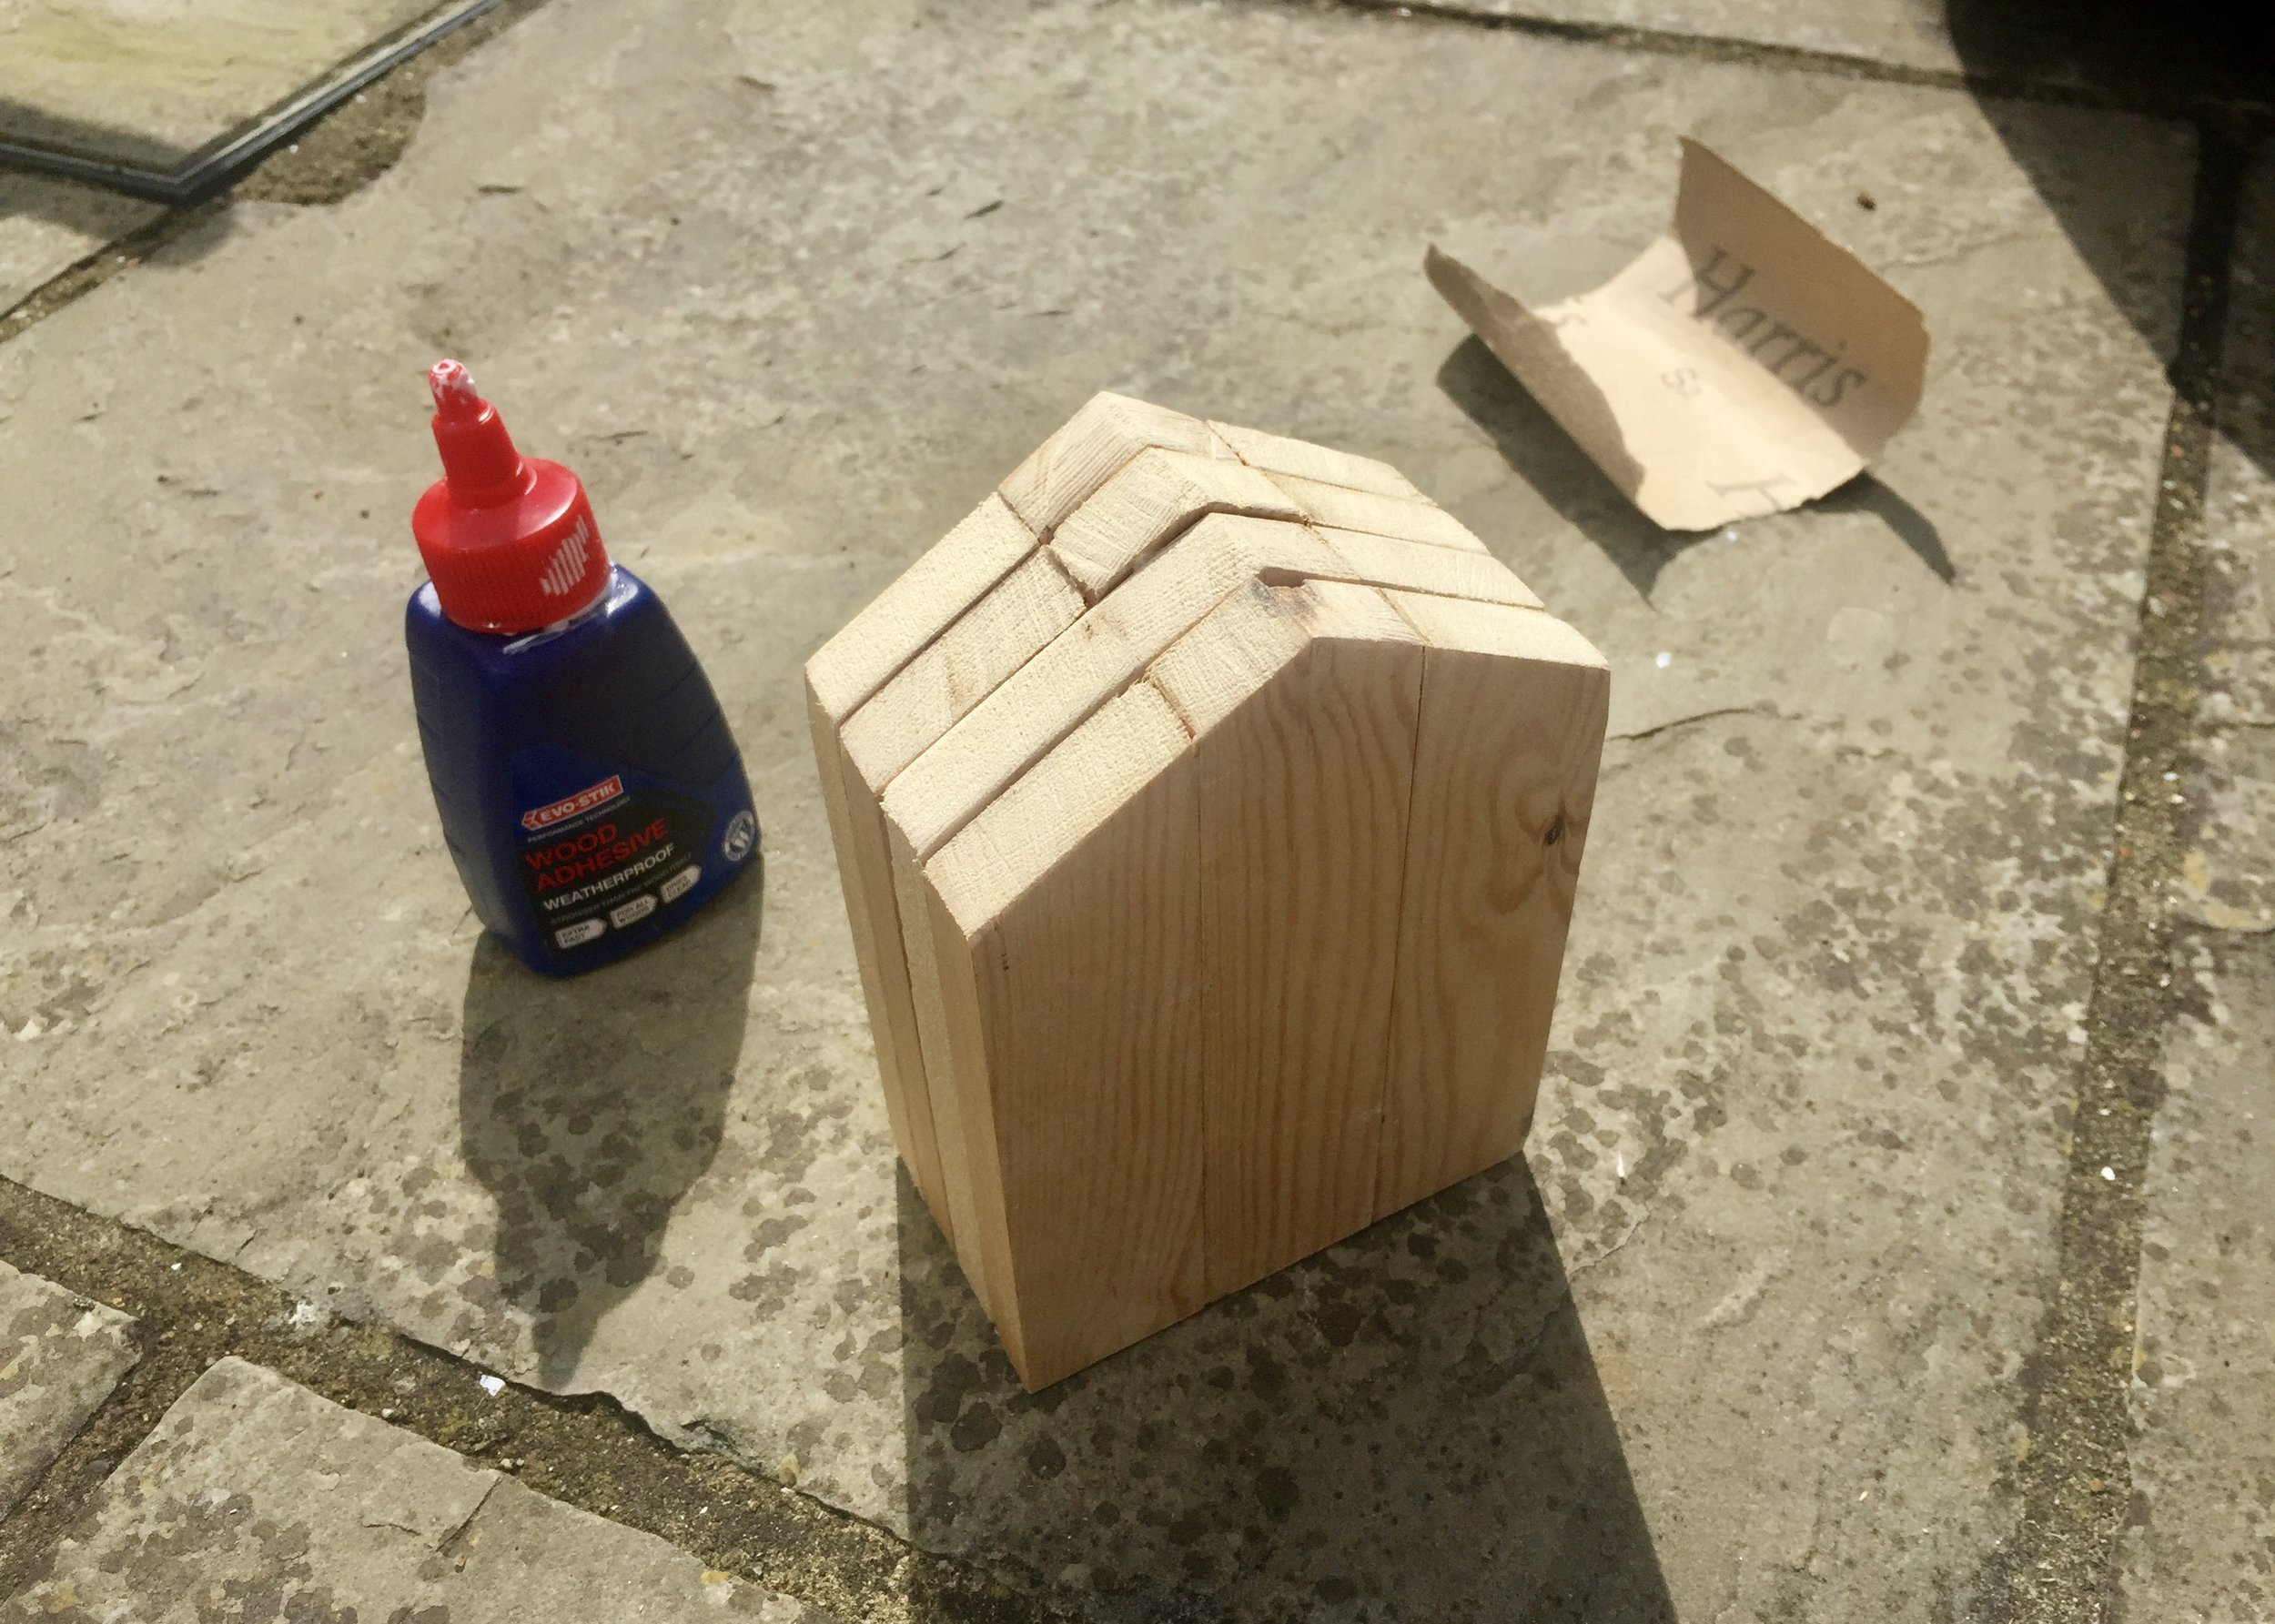 4. - Once the glue is dry, glue these 2D shapes on top of each other to create a 3D house shape. Again, be sure to line up the bottom as best as you can and leave it to dry completely. Using a sanding block and sand paper, I then evened out the top, bottom and sides.